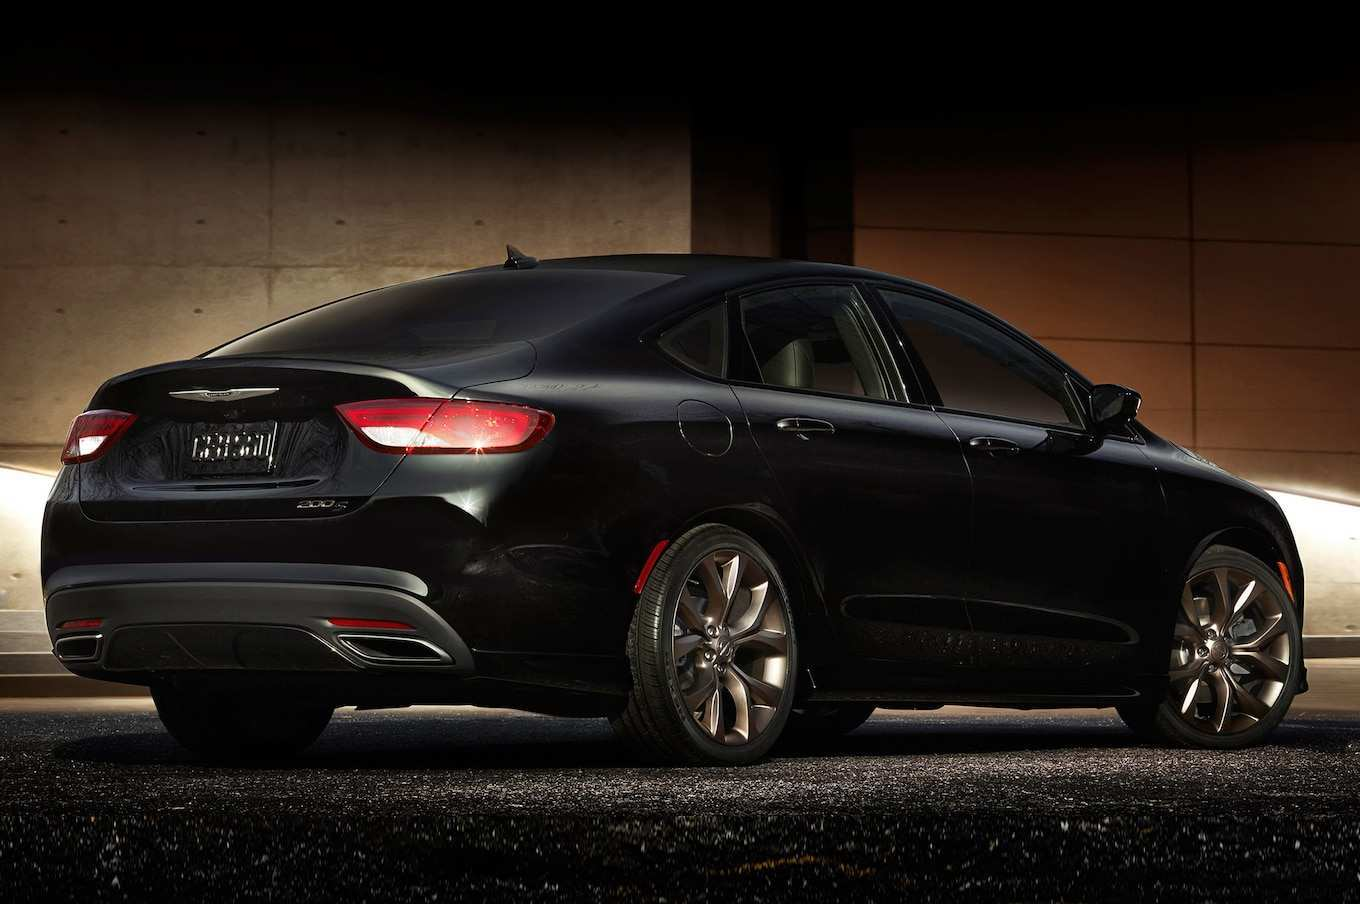 14 The Picture Of A Chrysler 200 Wallpaper by Picture Of A Chrysler 200